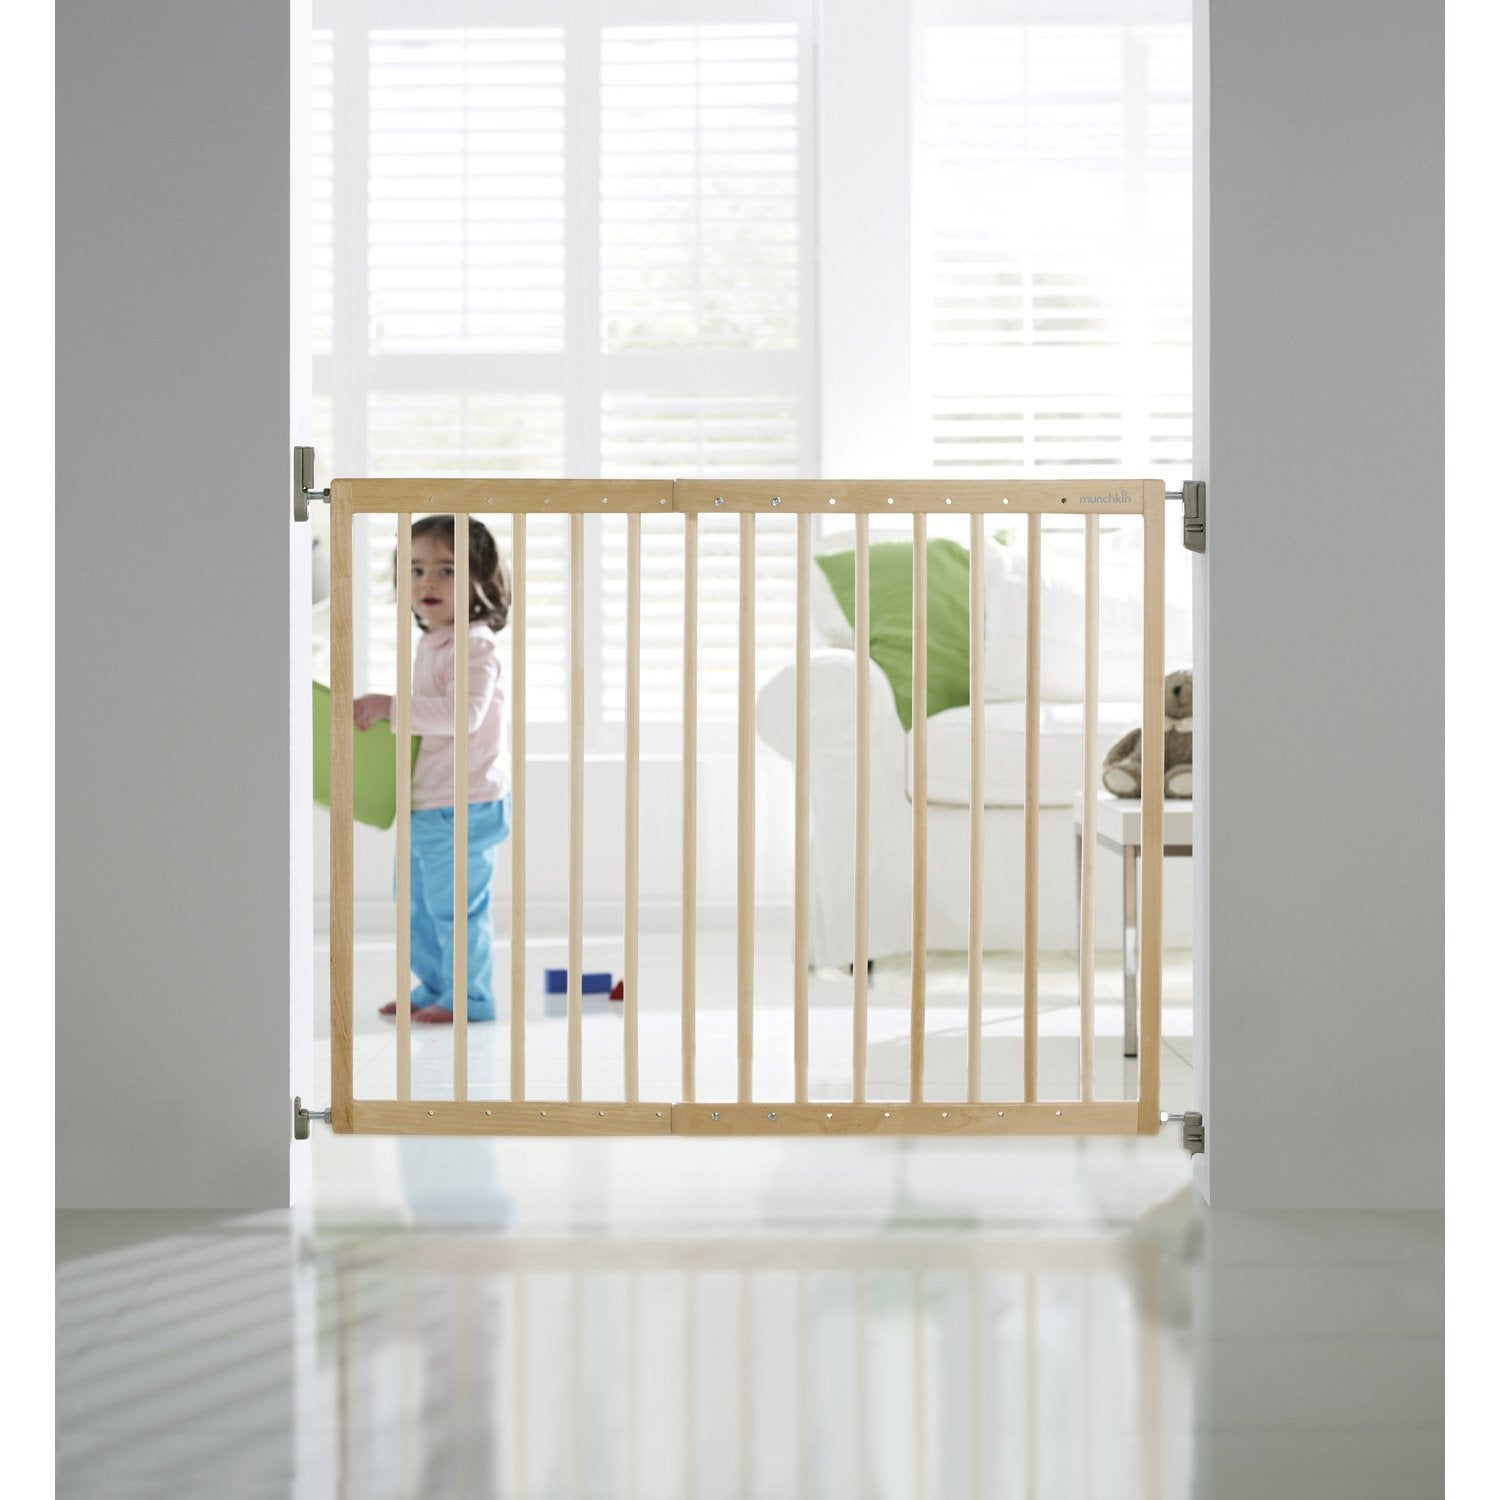 Barri re de s curit enfant munchkin bois cm for Barriere de securite pour escalier helicoidale